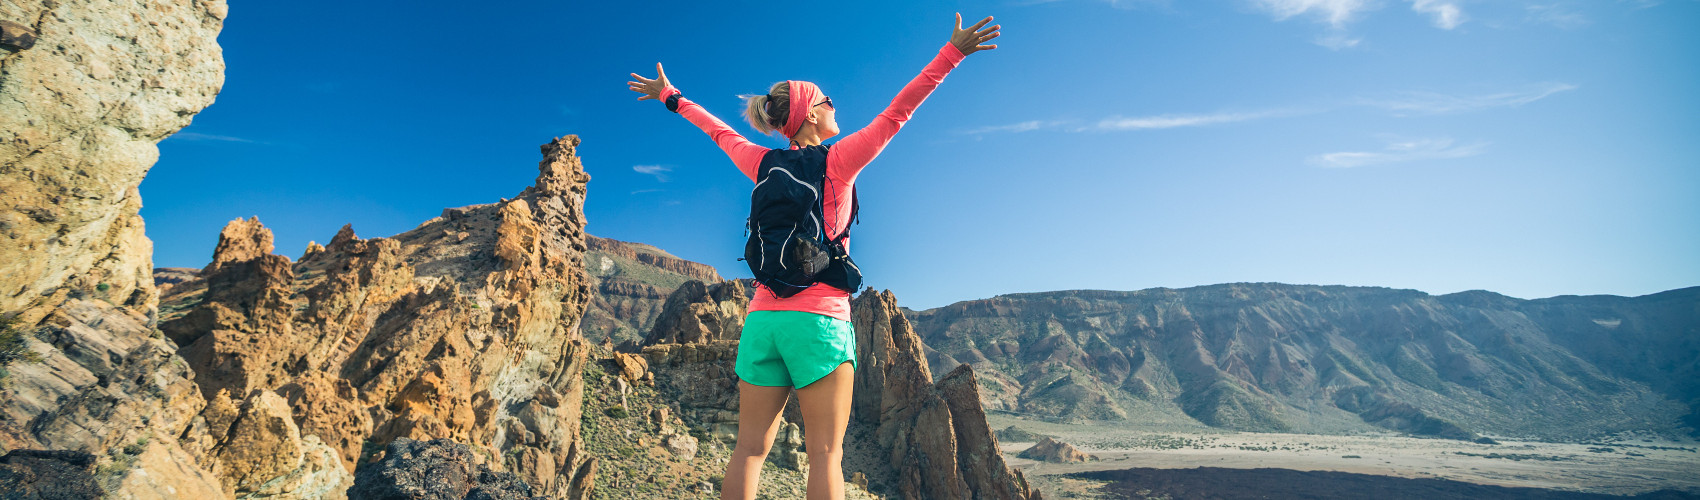 woman-hiker-with-arms-outstretched-enjoy-PKXBG5H-1